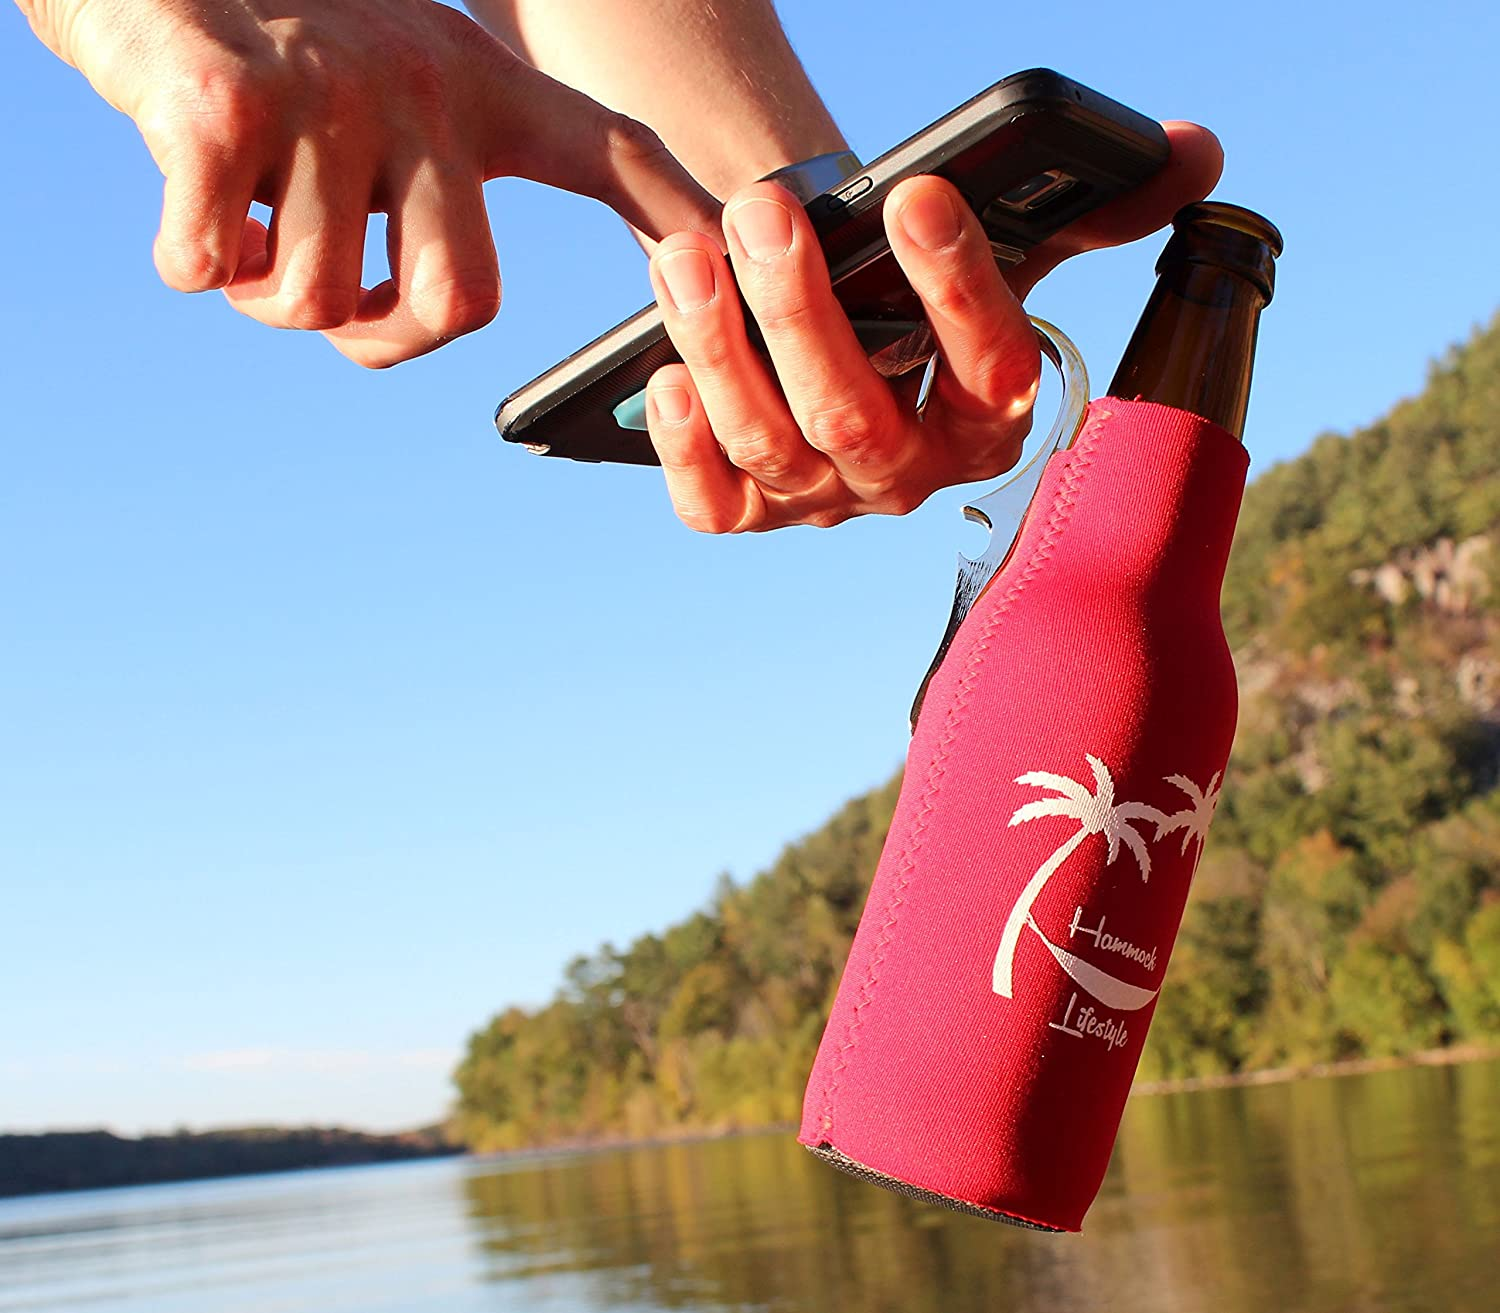 CoozieClaw Unique Bottle Cooler with Built in Hook and Bottle Opener Fun Gift #1 Hanging Bottle Holder Easily Hang Your Cold Beer Bottle Sleeve Anywhere Hammock Lifestyle USA 1, Turquoise With Logo